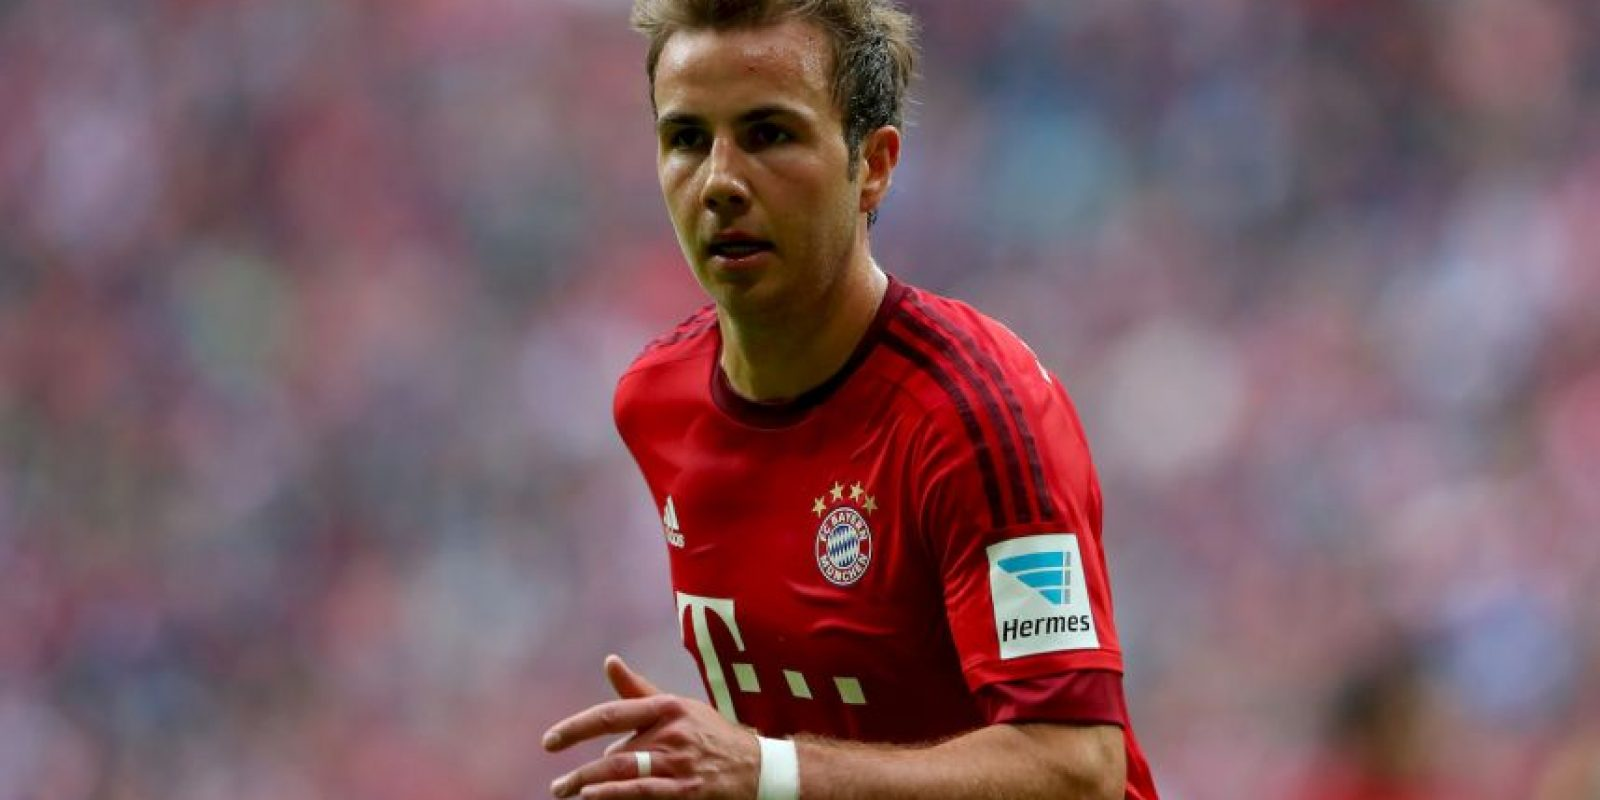 4. Mario Götze Foto: Getty Images